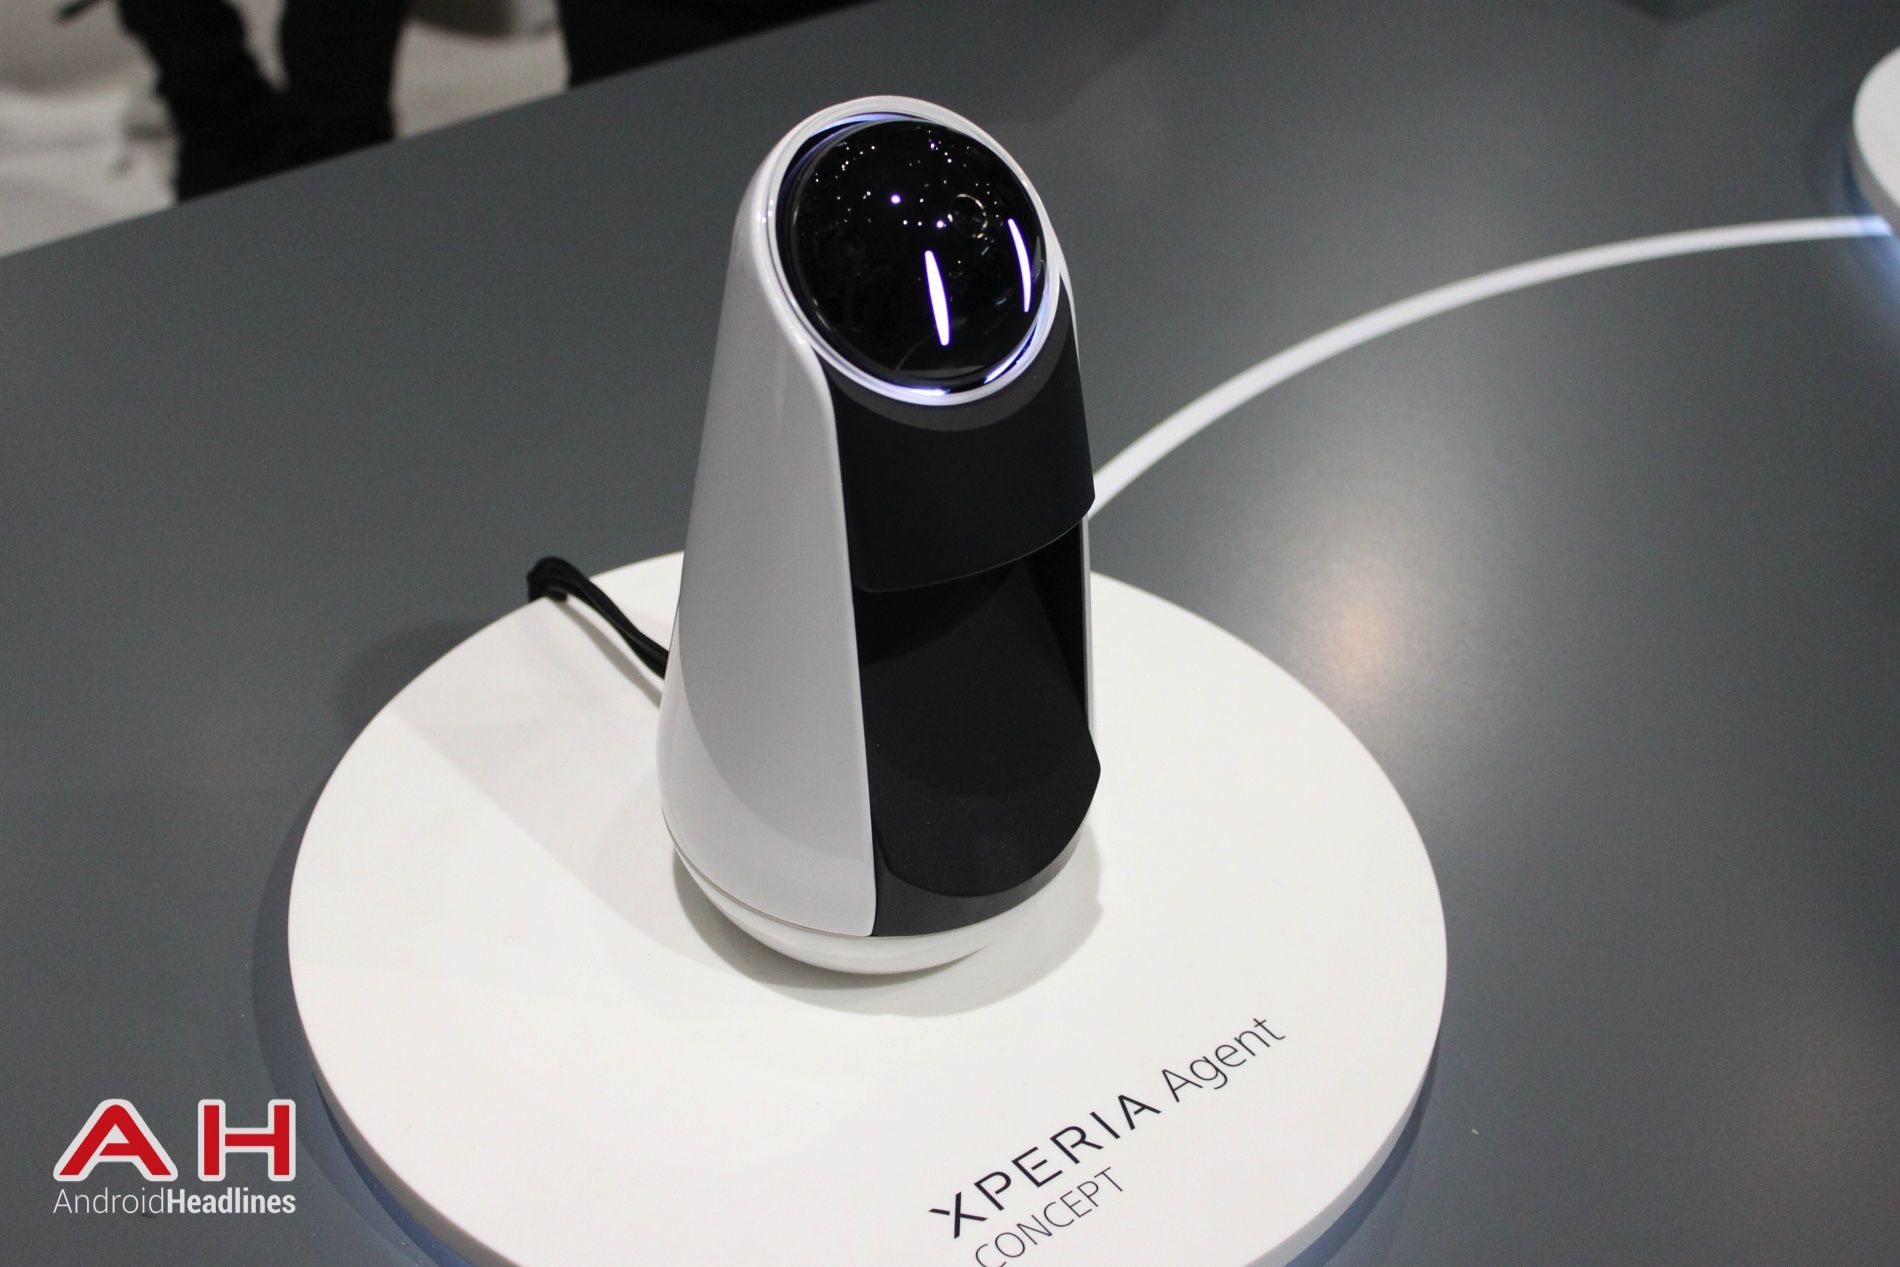 Sony Will Focus On A.I. For Future Business Revenue